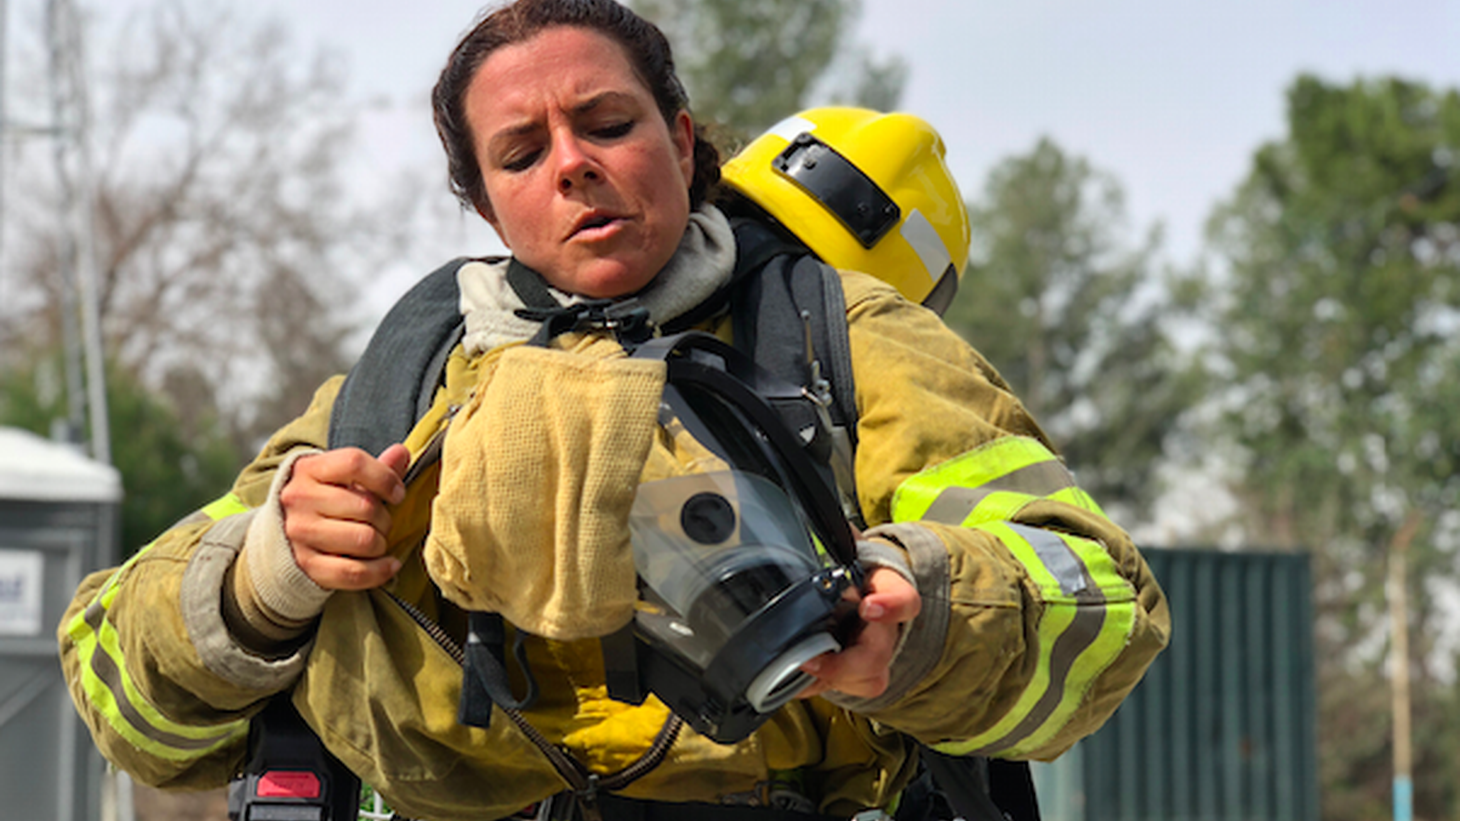 Becoming a firefighter is not an easy task. The competition is fierce and the physical requirements are grueling, especially if you're a woman. The LA County Fire department has faced criticism in the past for its lack of diversity.